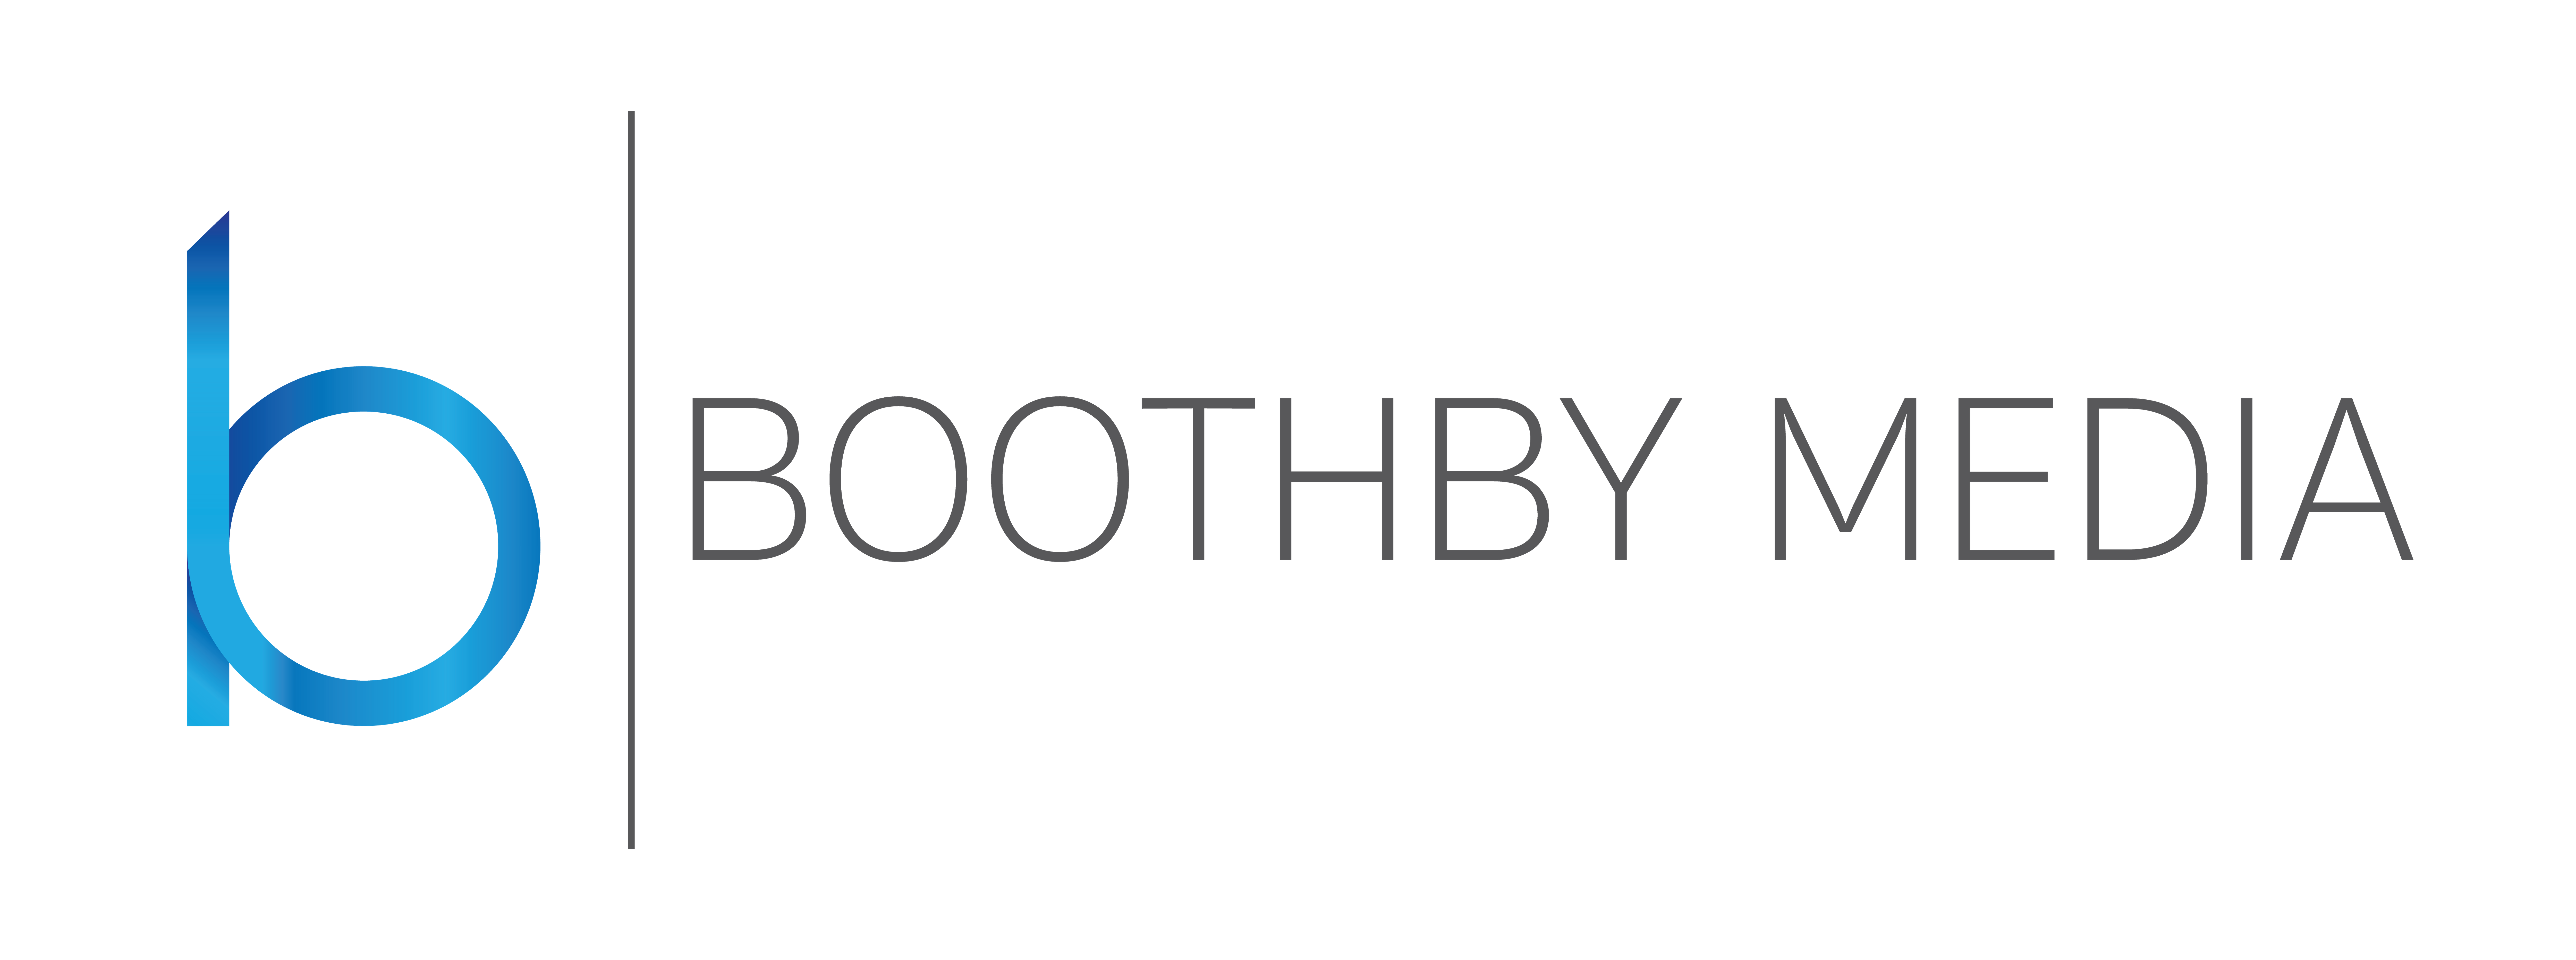 Boothby Media